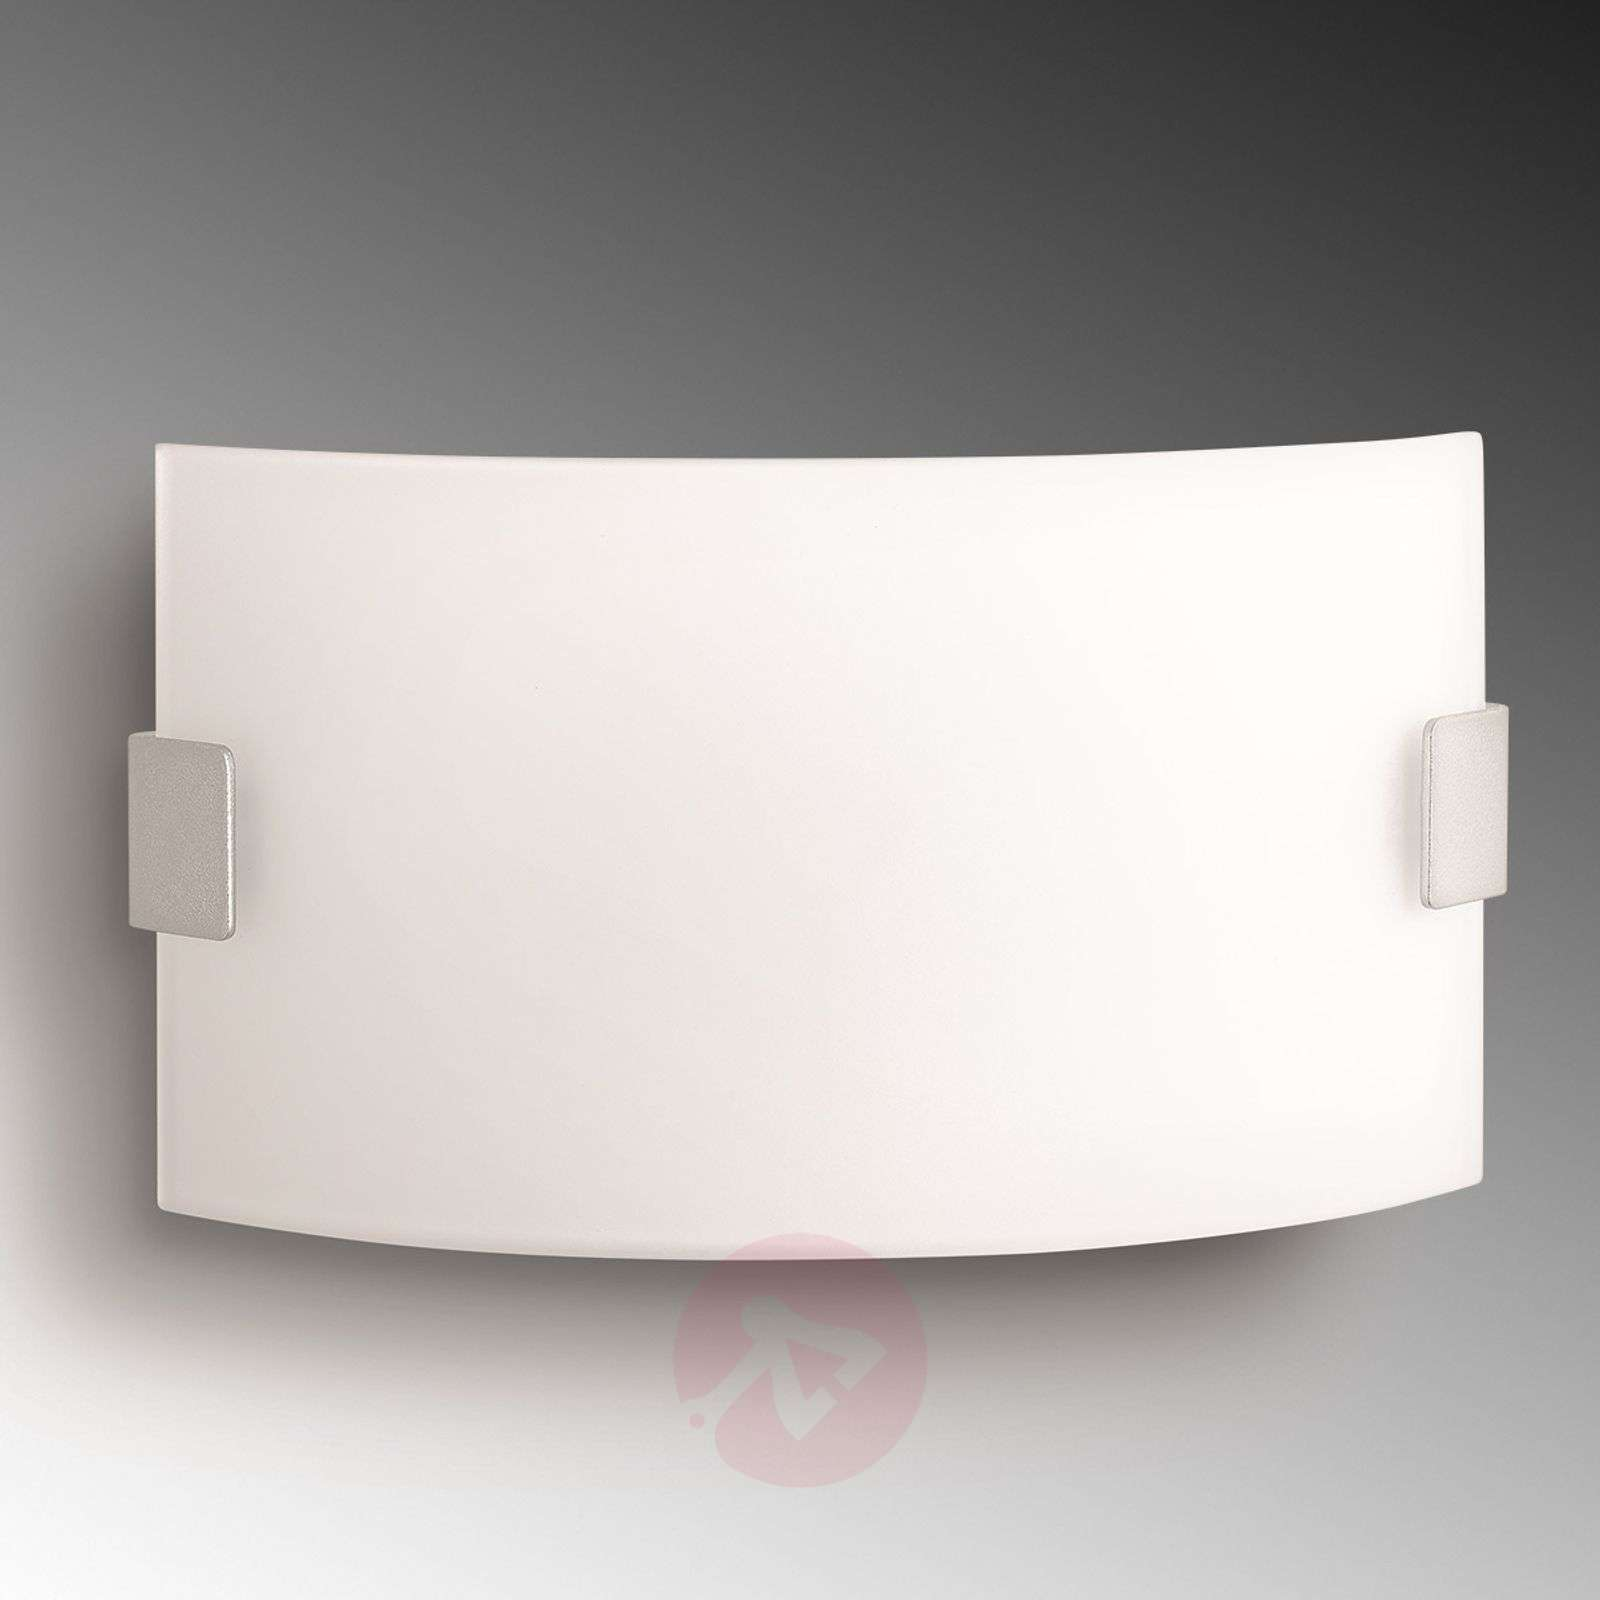 Applique a LED Celadon-7531493-01